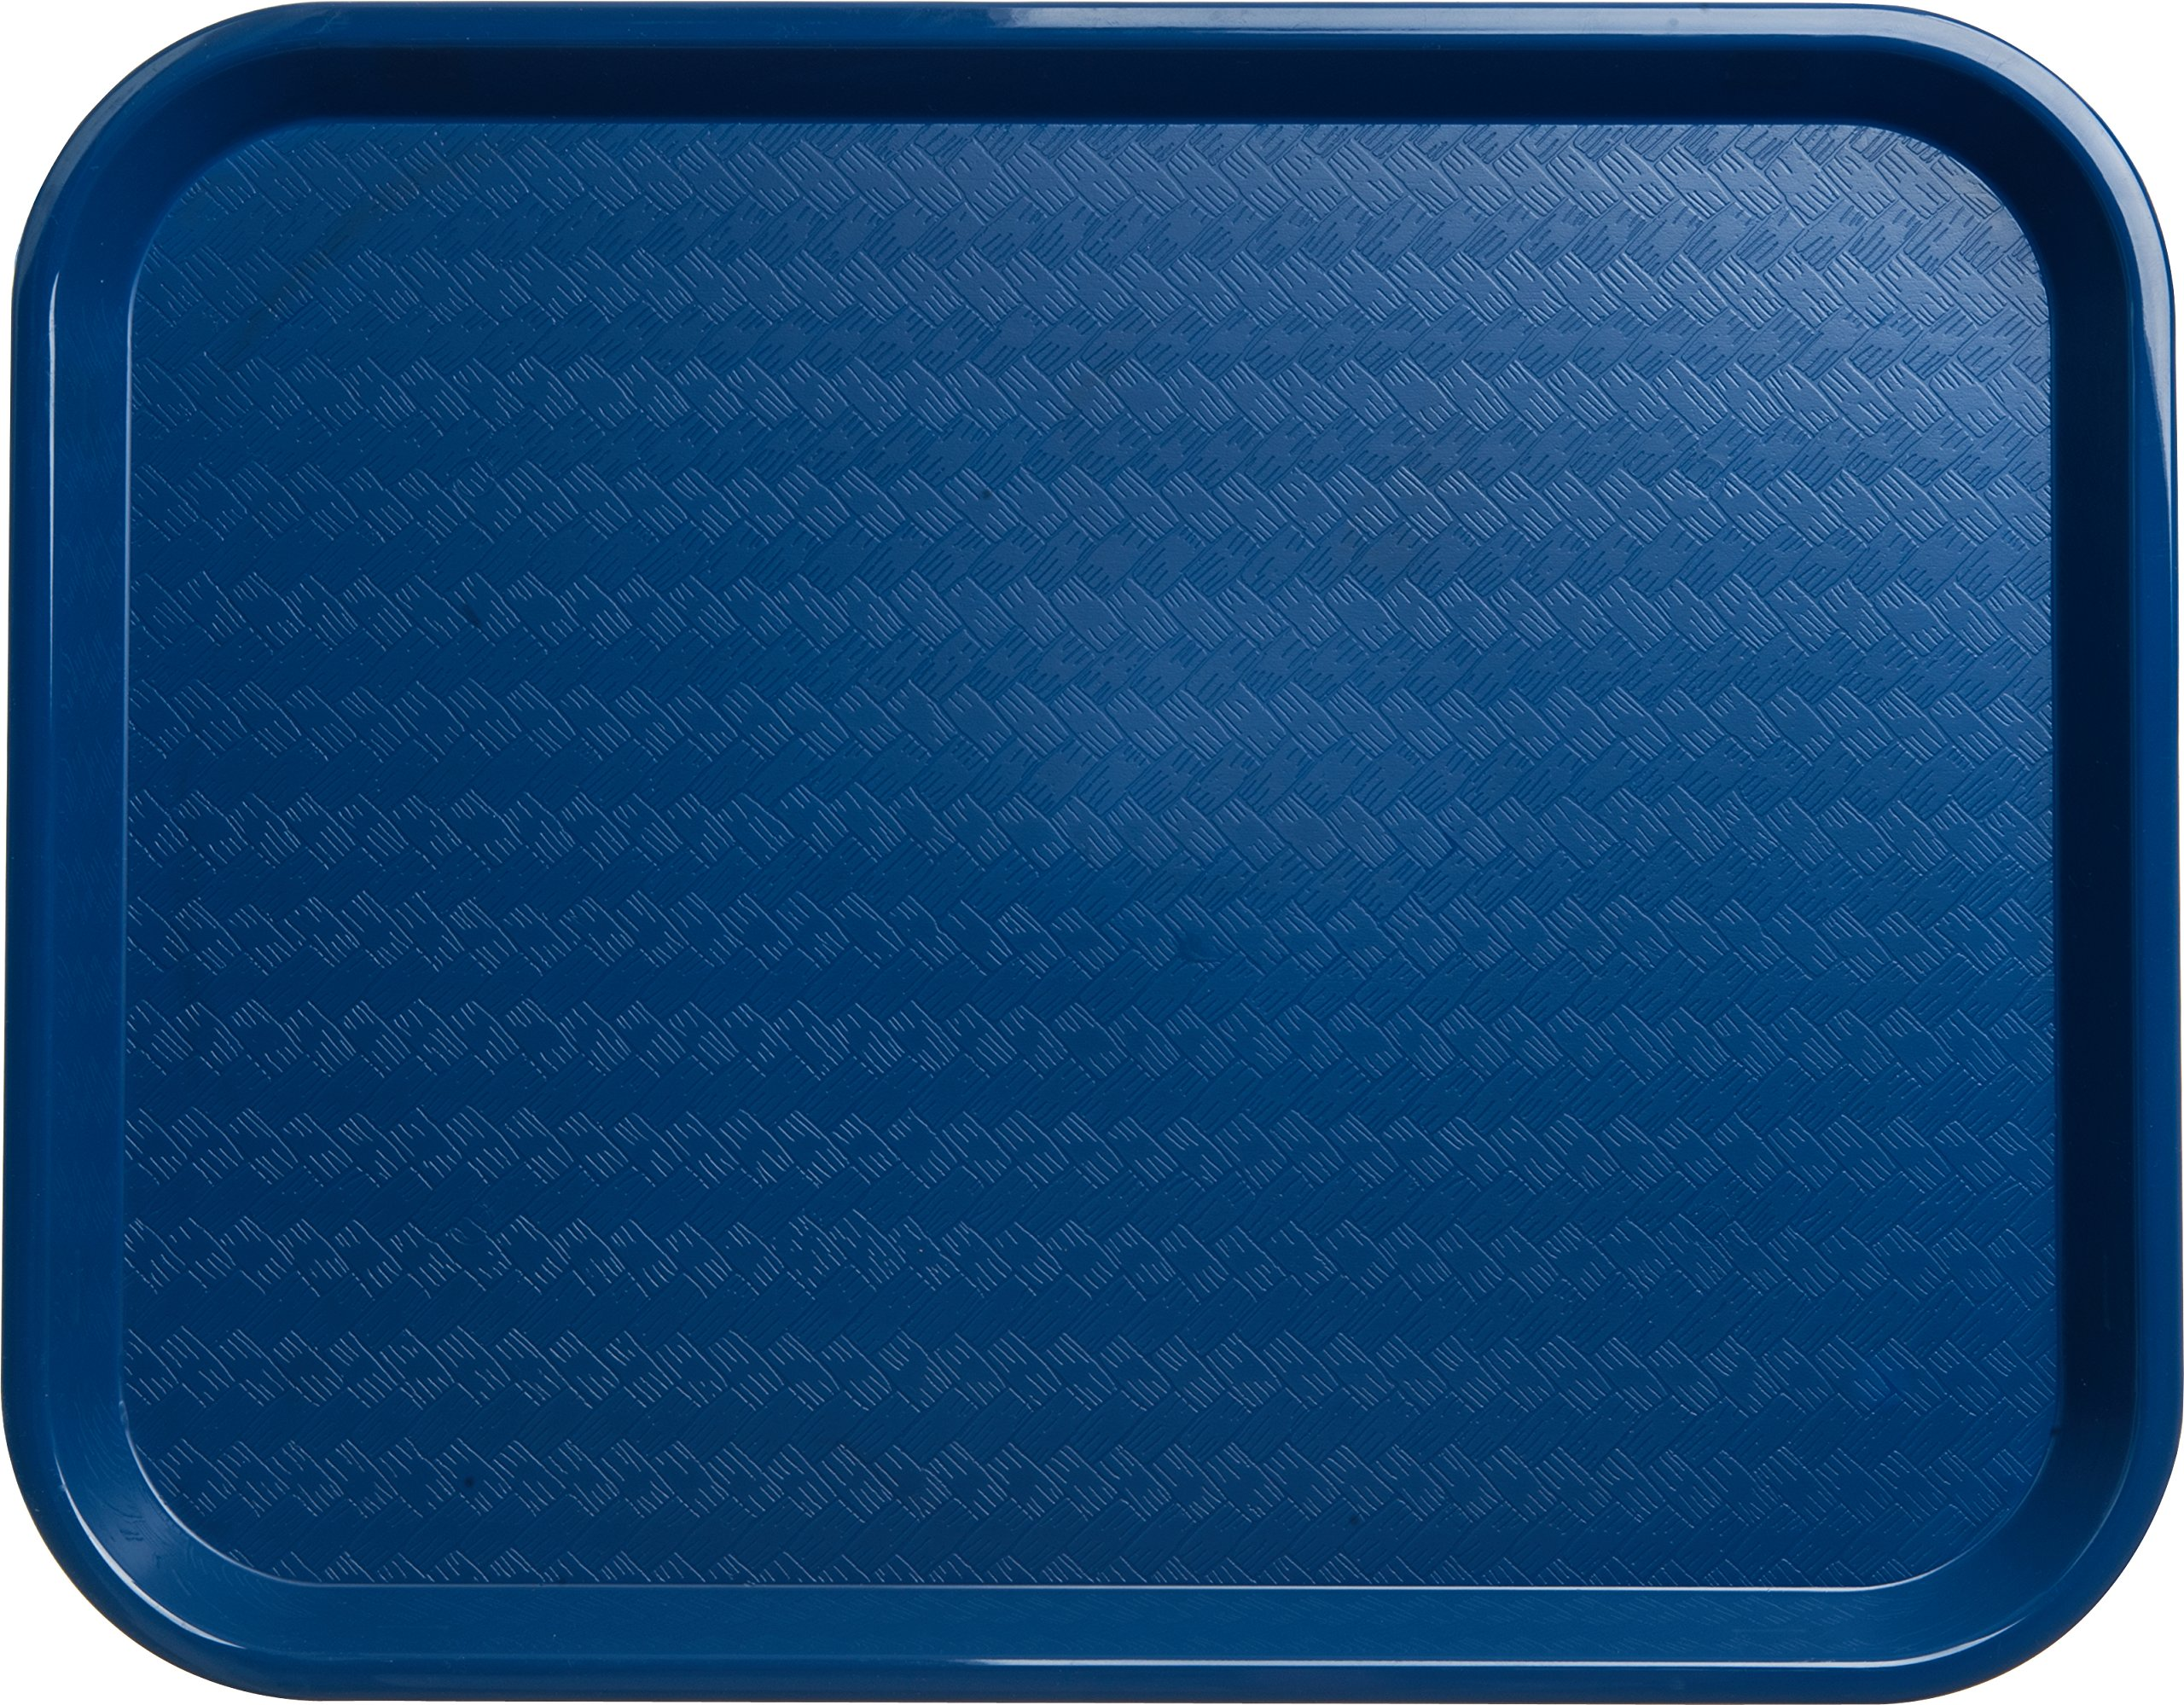 Carlisle CT141814 Café Standard Cafeteria / Fast Food Tray, 14'' x 18'', Blue (Pack of 12) by Carlisle (Image #3)